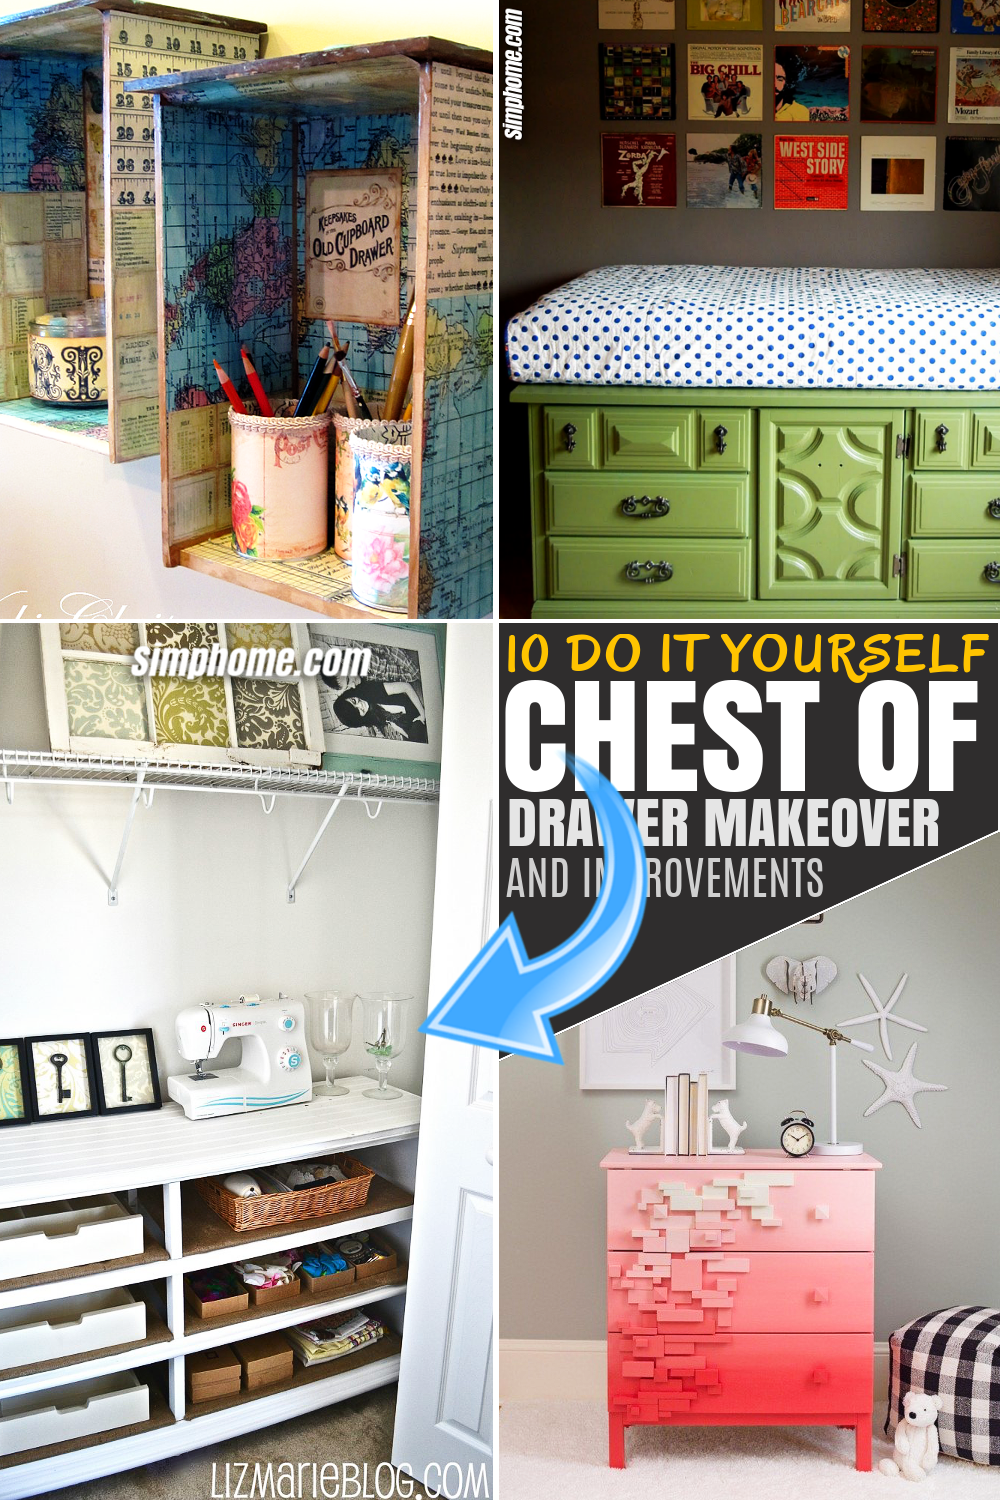 SIMPHOME.COM 10 unique chests of drawers' makeover and improvement ideas Featured Image